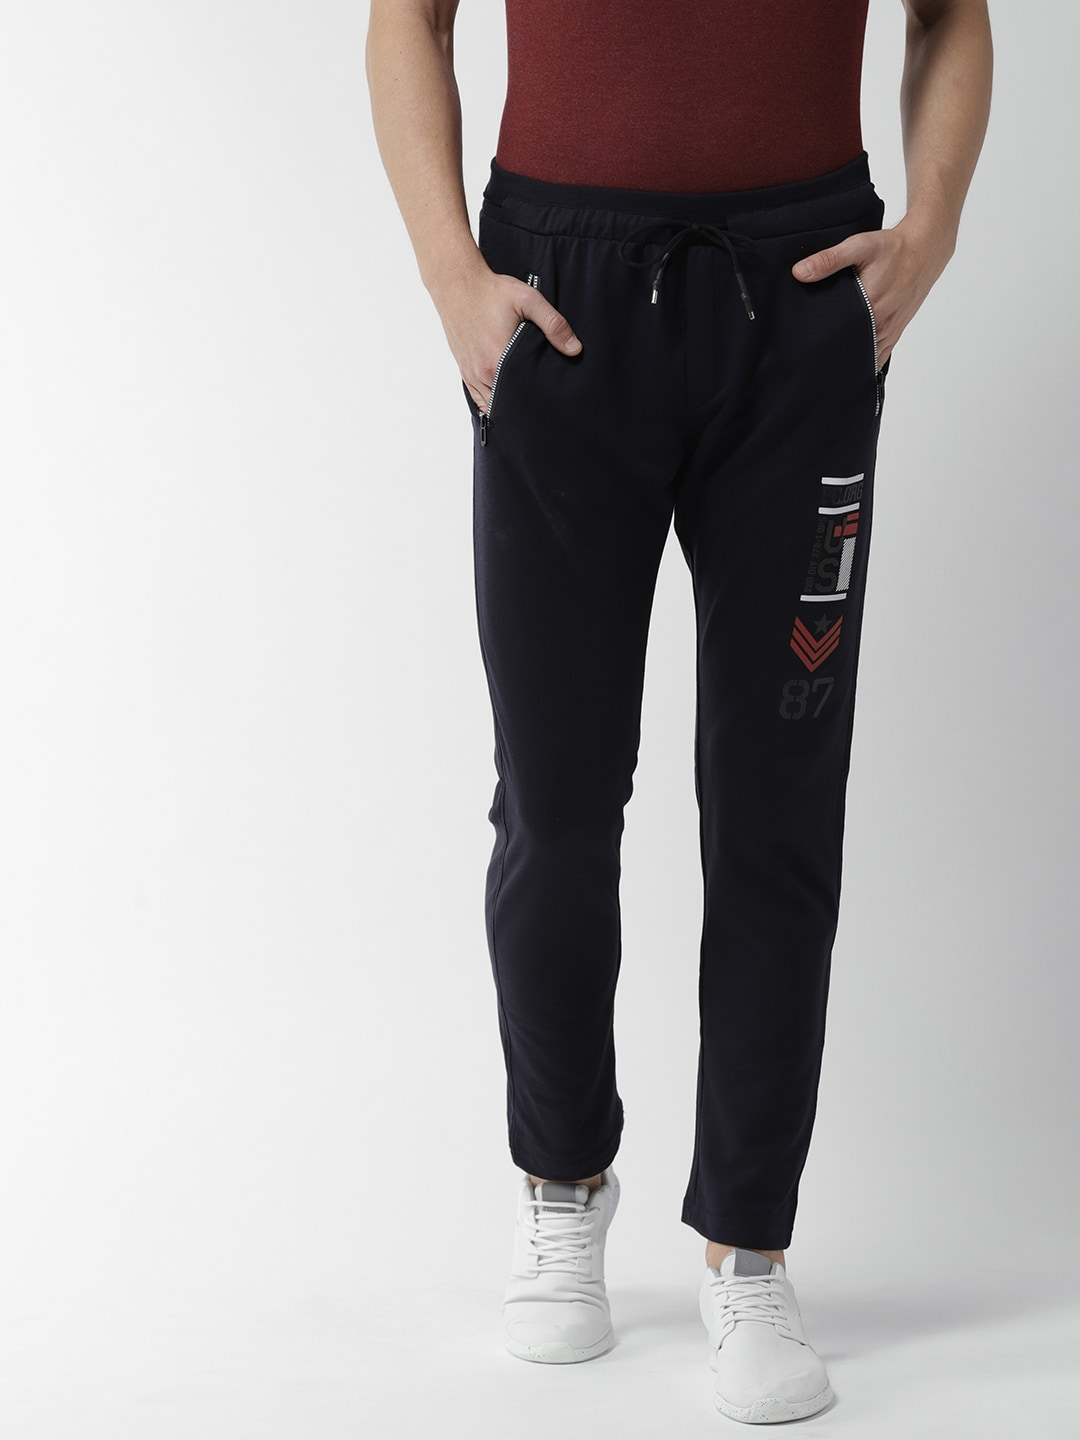 0c4d688f8db Blue Track Pants - Buy Blue Track Pants Online in India